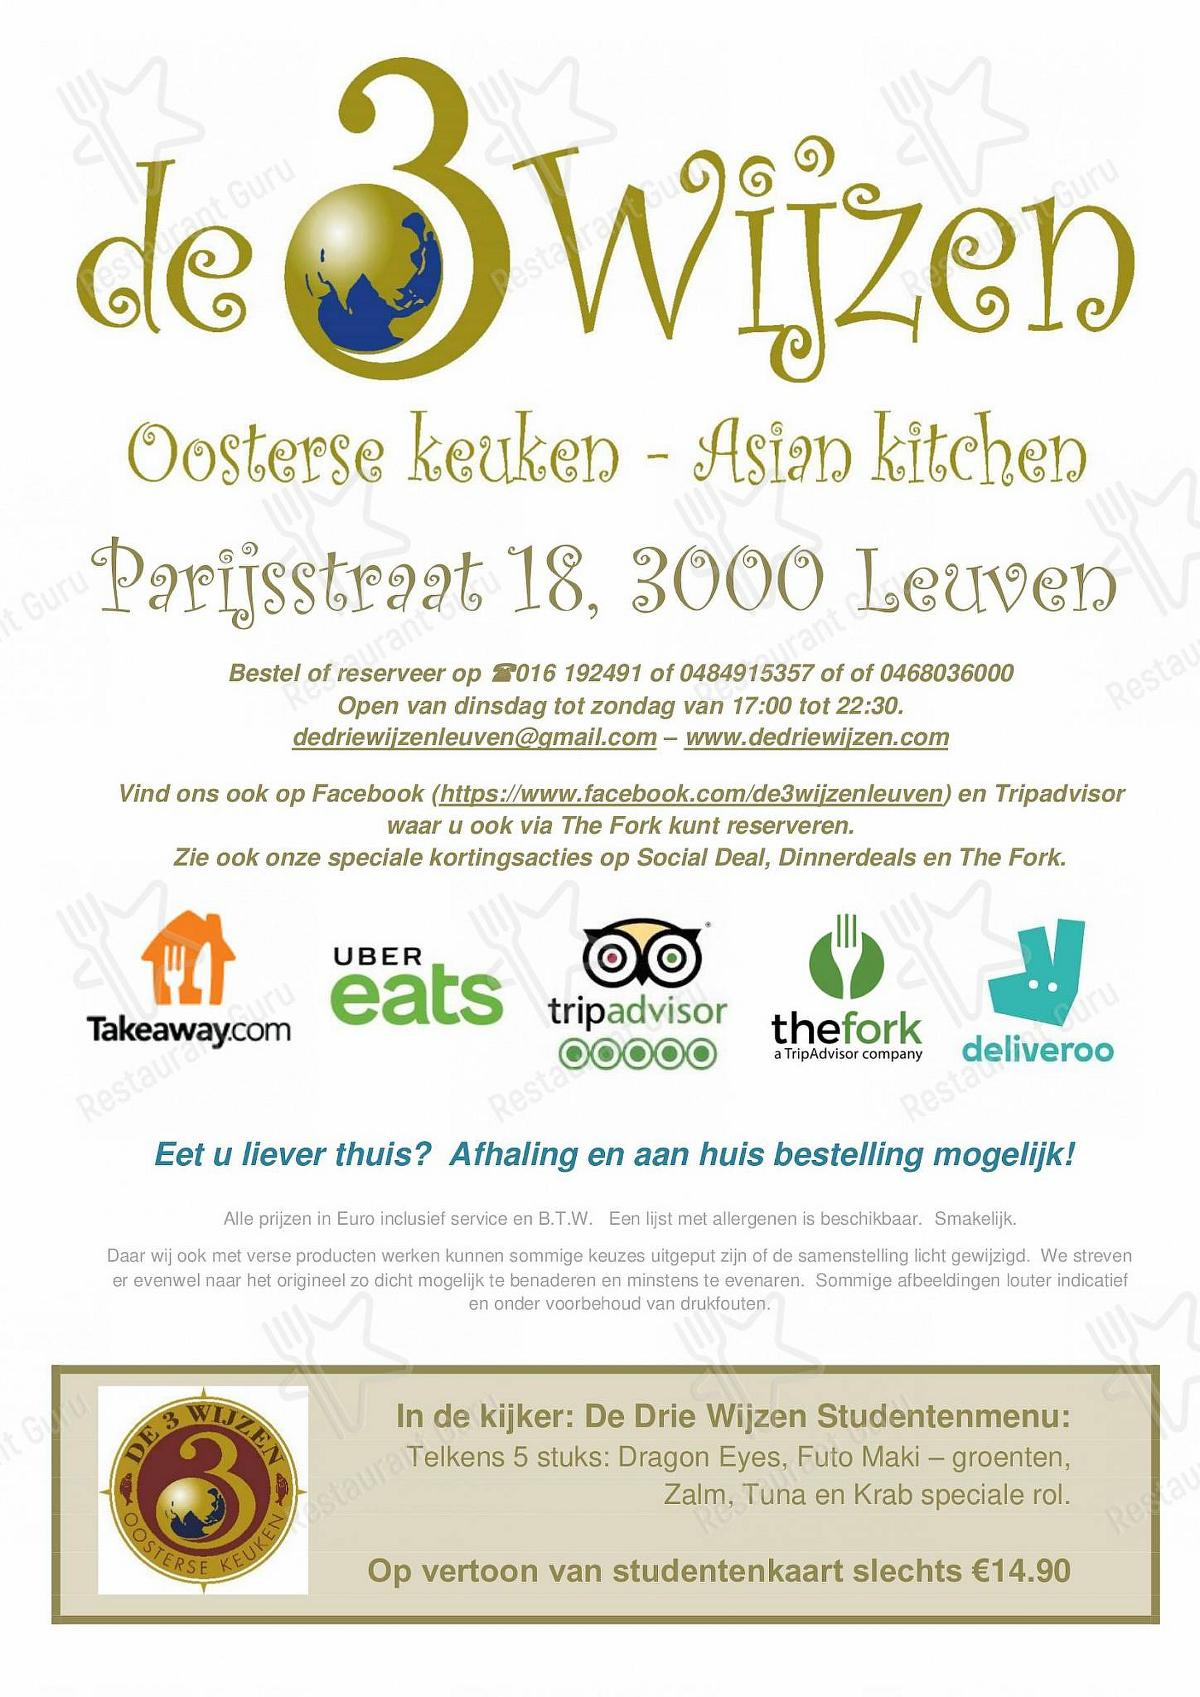 Menu for the De 3 Wijzen restaurant